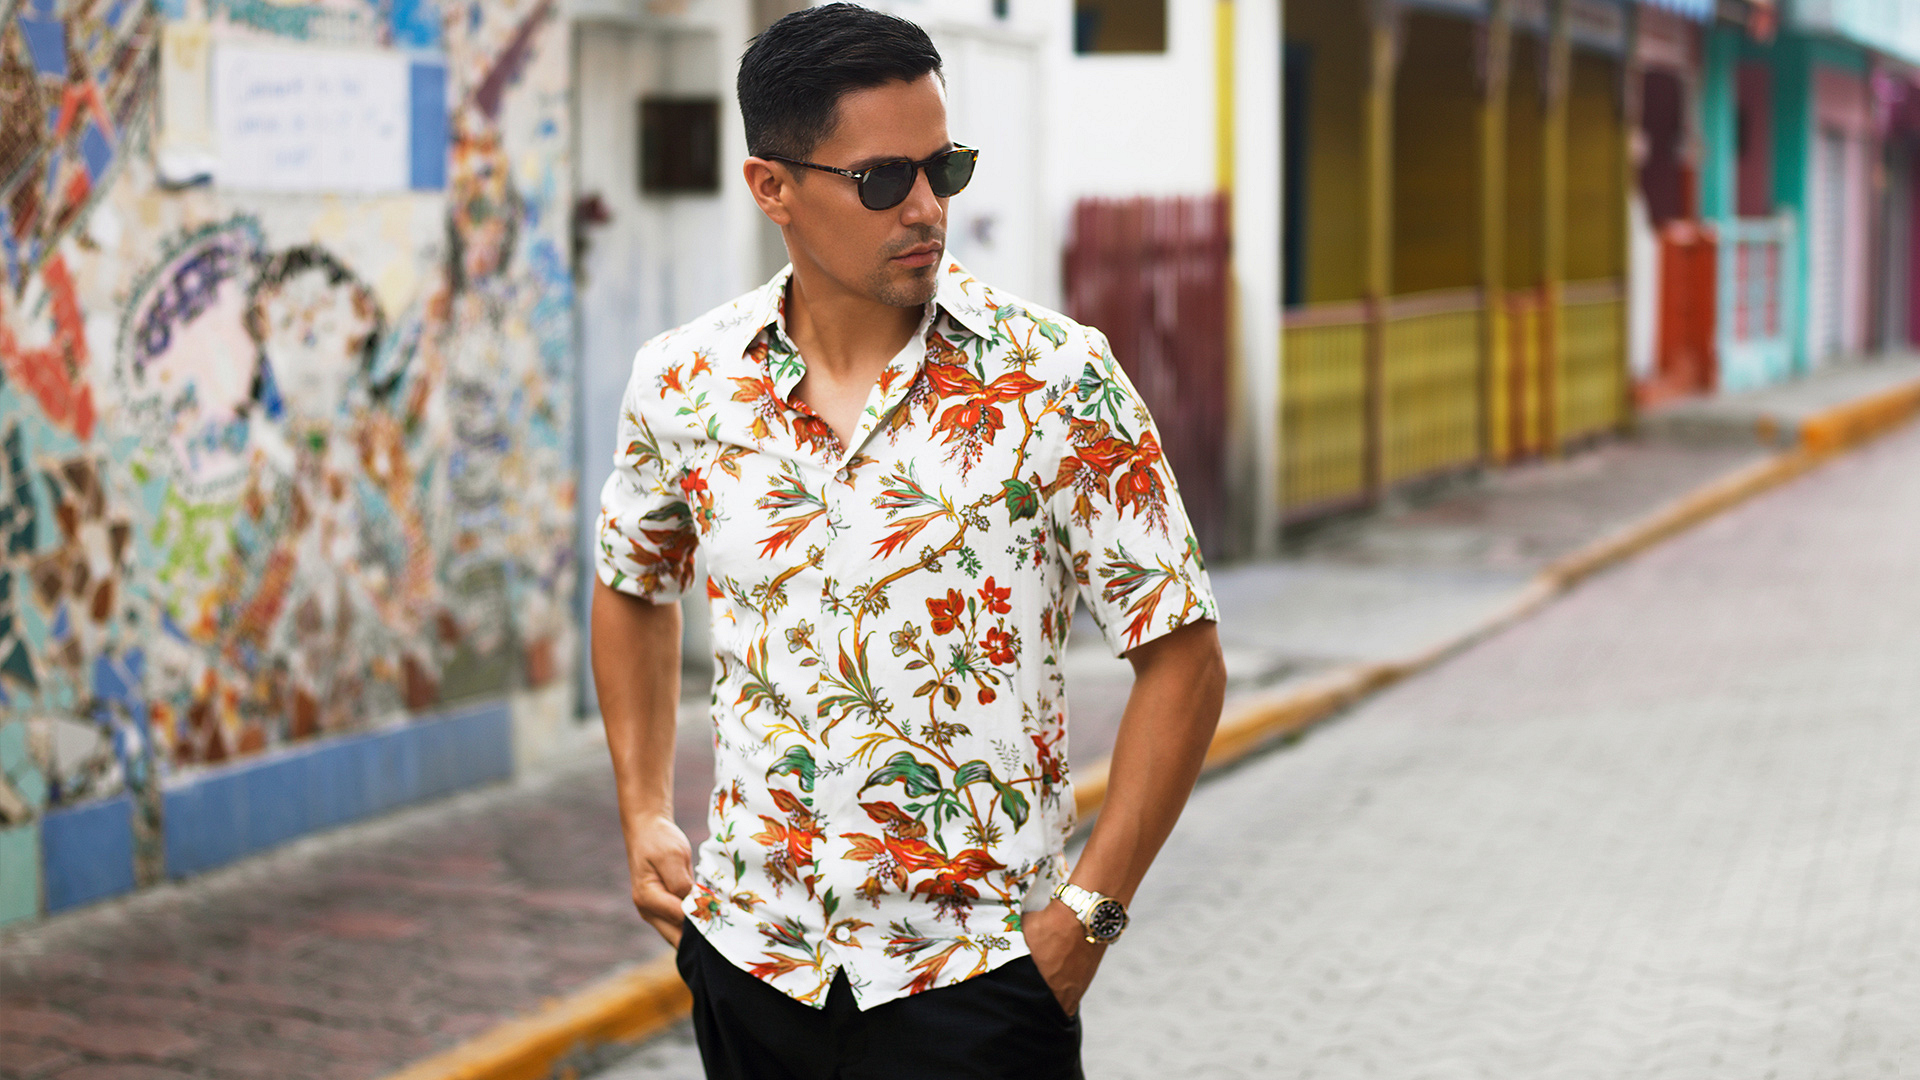 Magnum P.I. star Jay Hernandez turns up the heat in Mexico